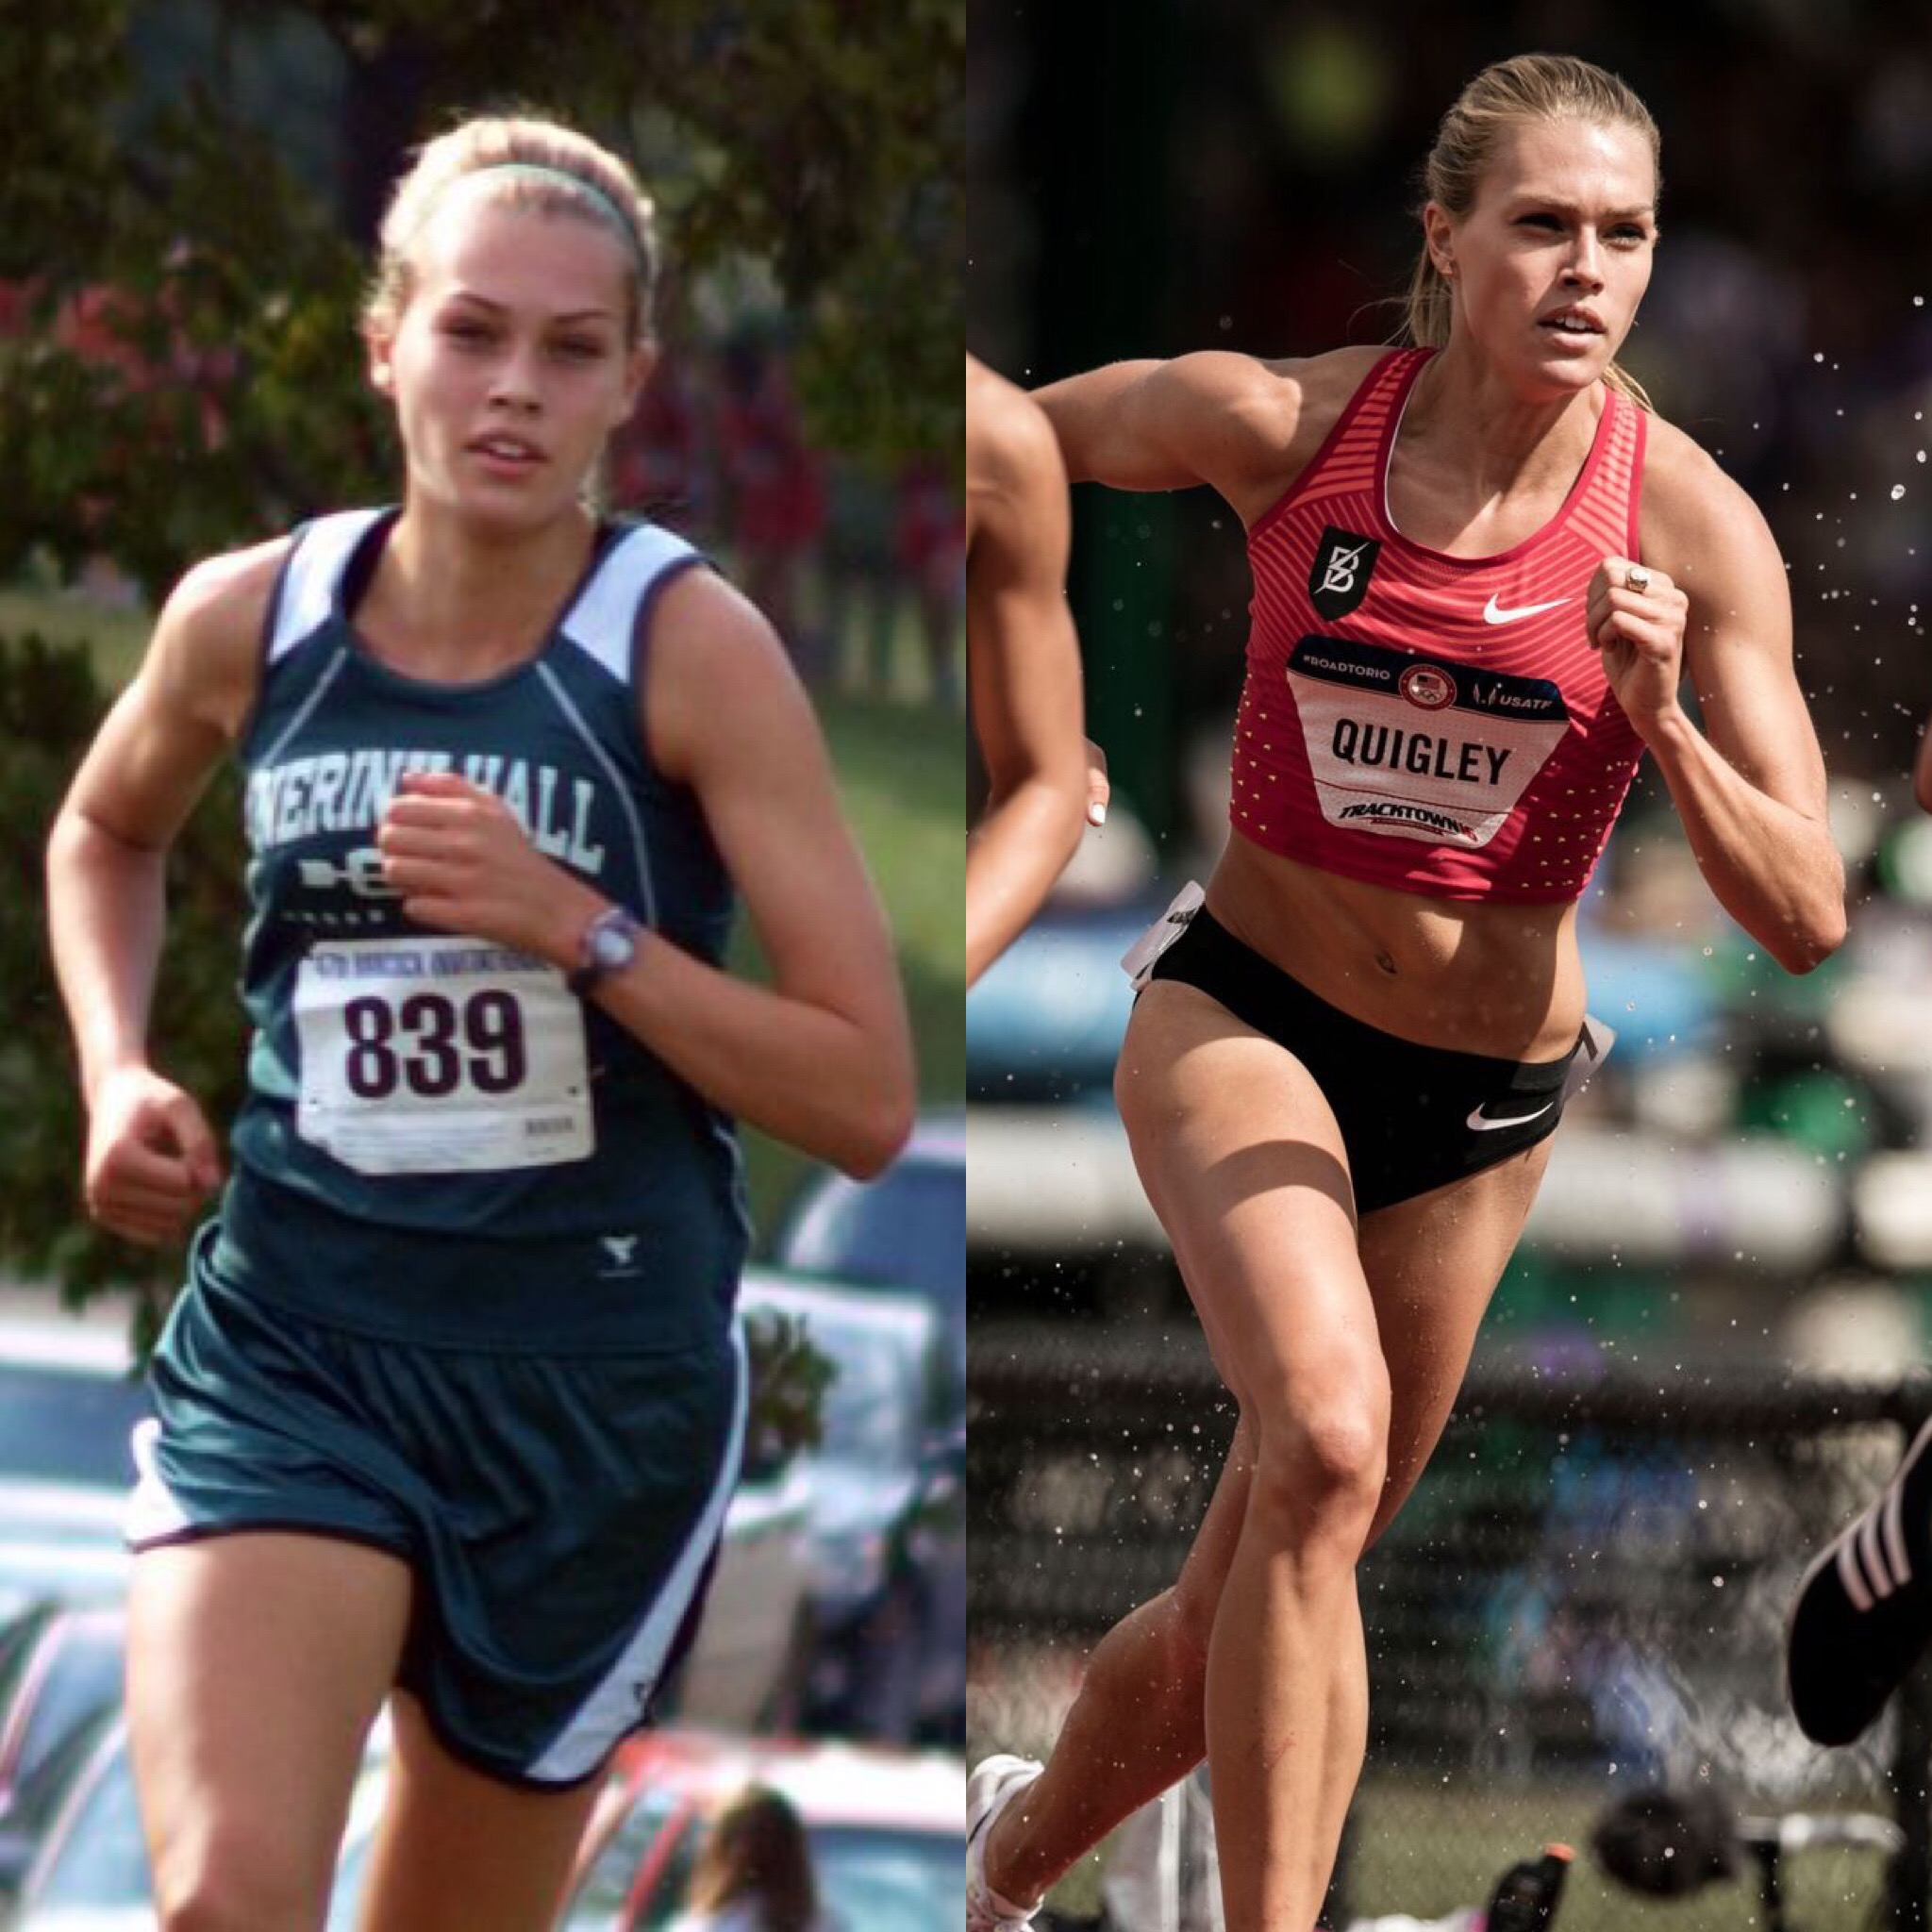 Left: 2010, senior year of high school competing for Nerinx Hall in St. Louis, MO.            Right:2016 at the Olympic Trials competing for the Bowerman Track Club in Eugene, OR.